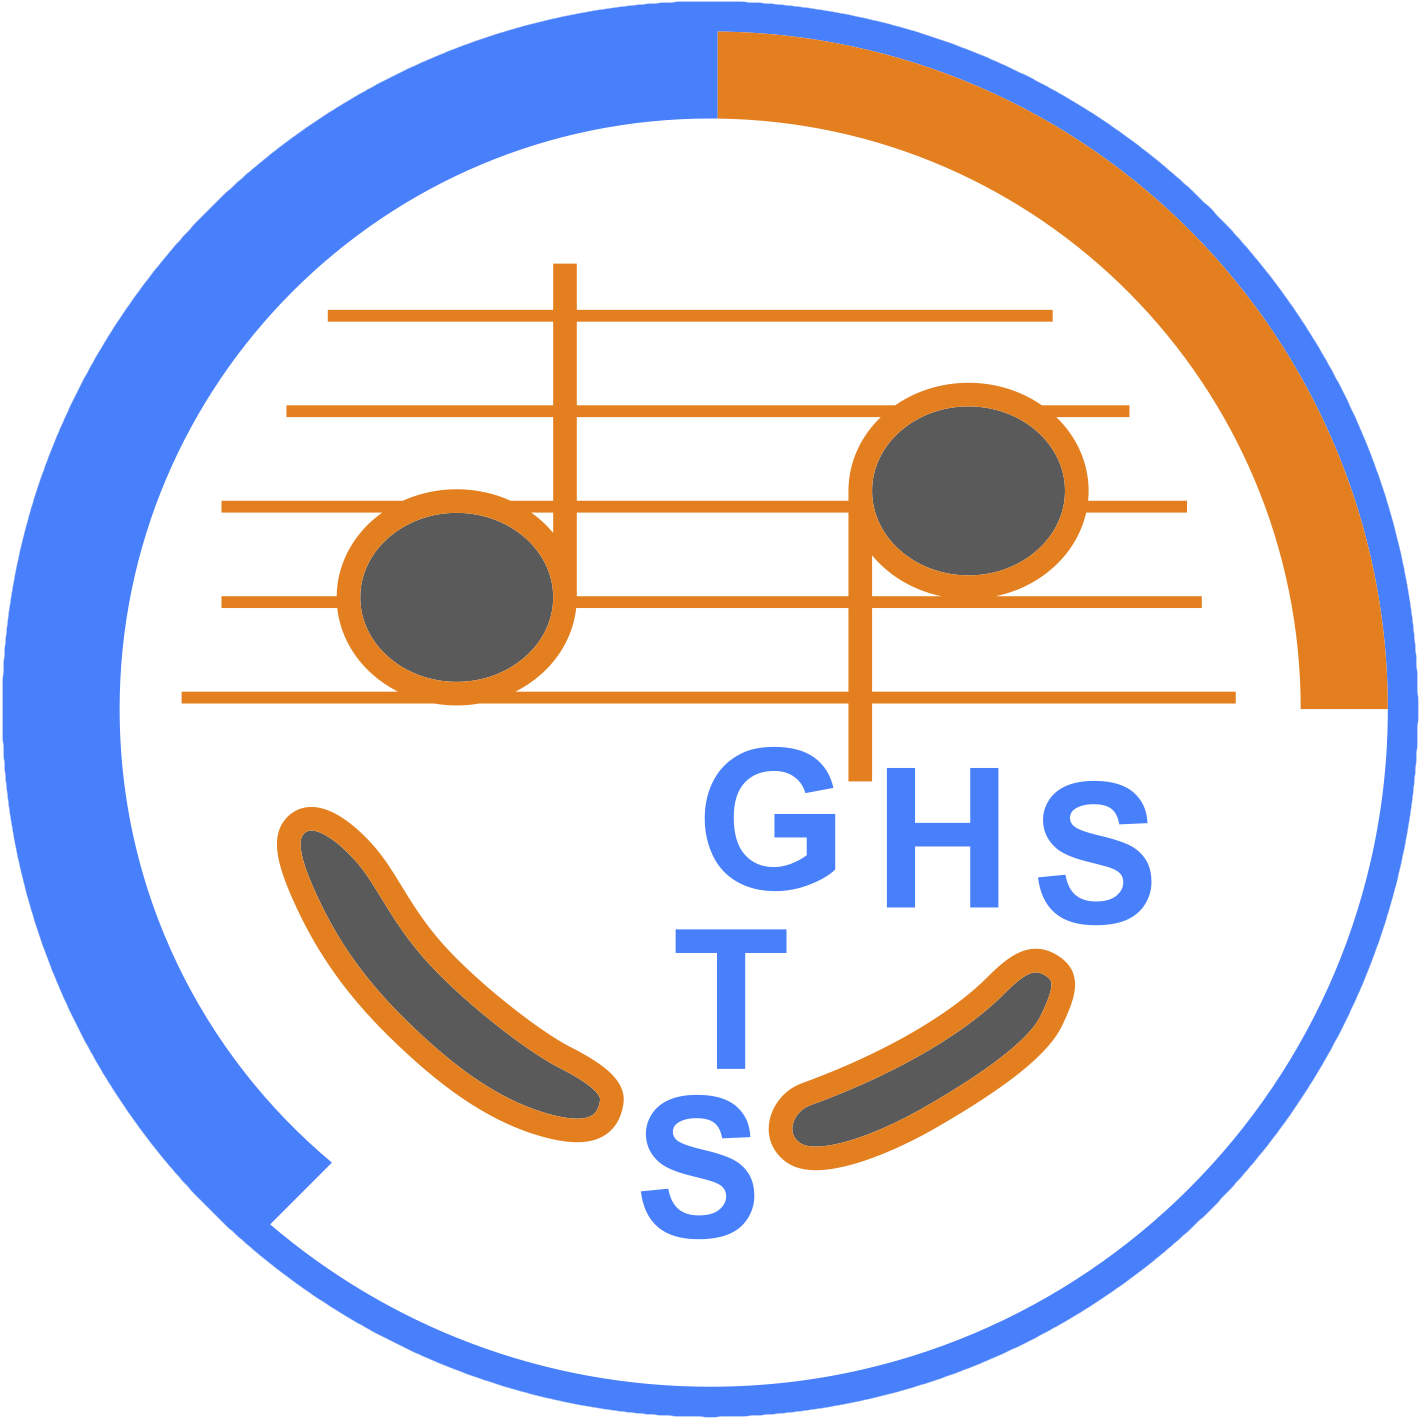 GHS-GTS-Logo_farbig.png